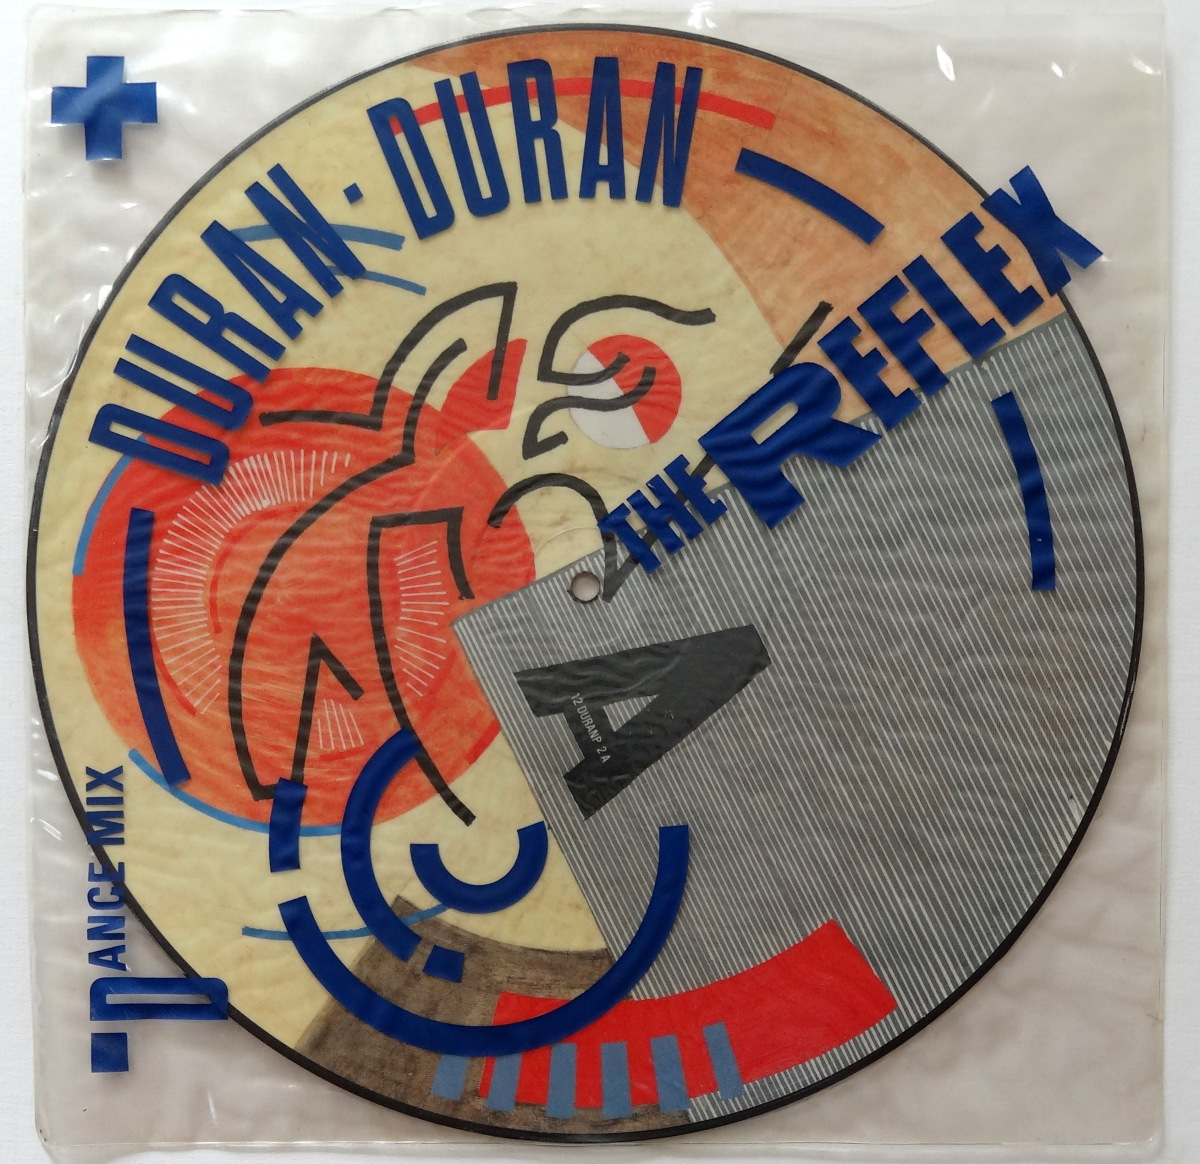 "From The Stacks: Duran Duran, ""The Reflex"" (Picture Disc)"